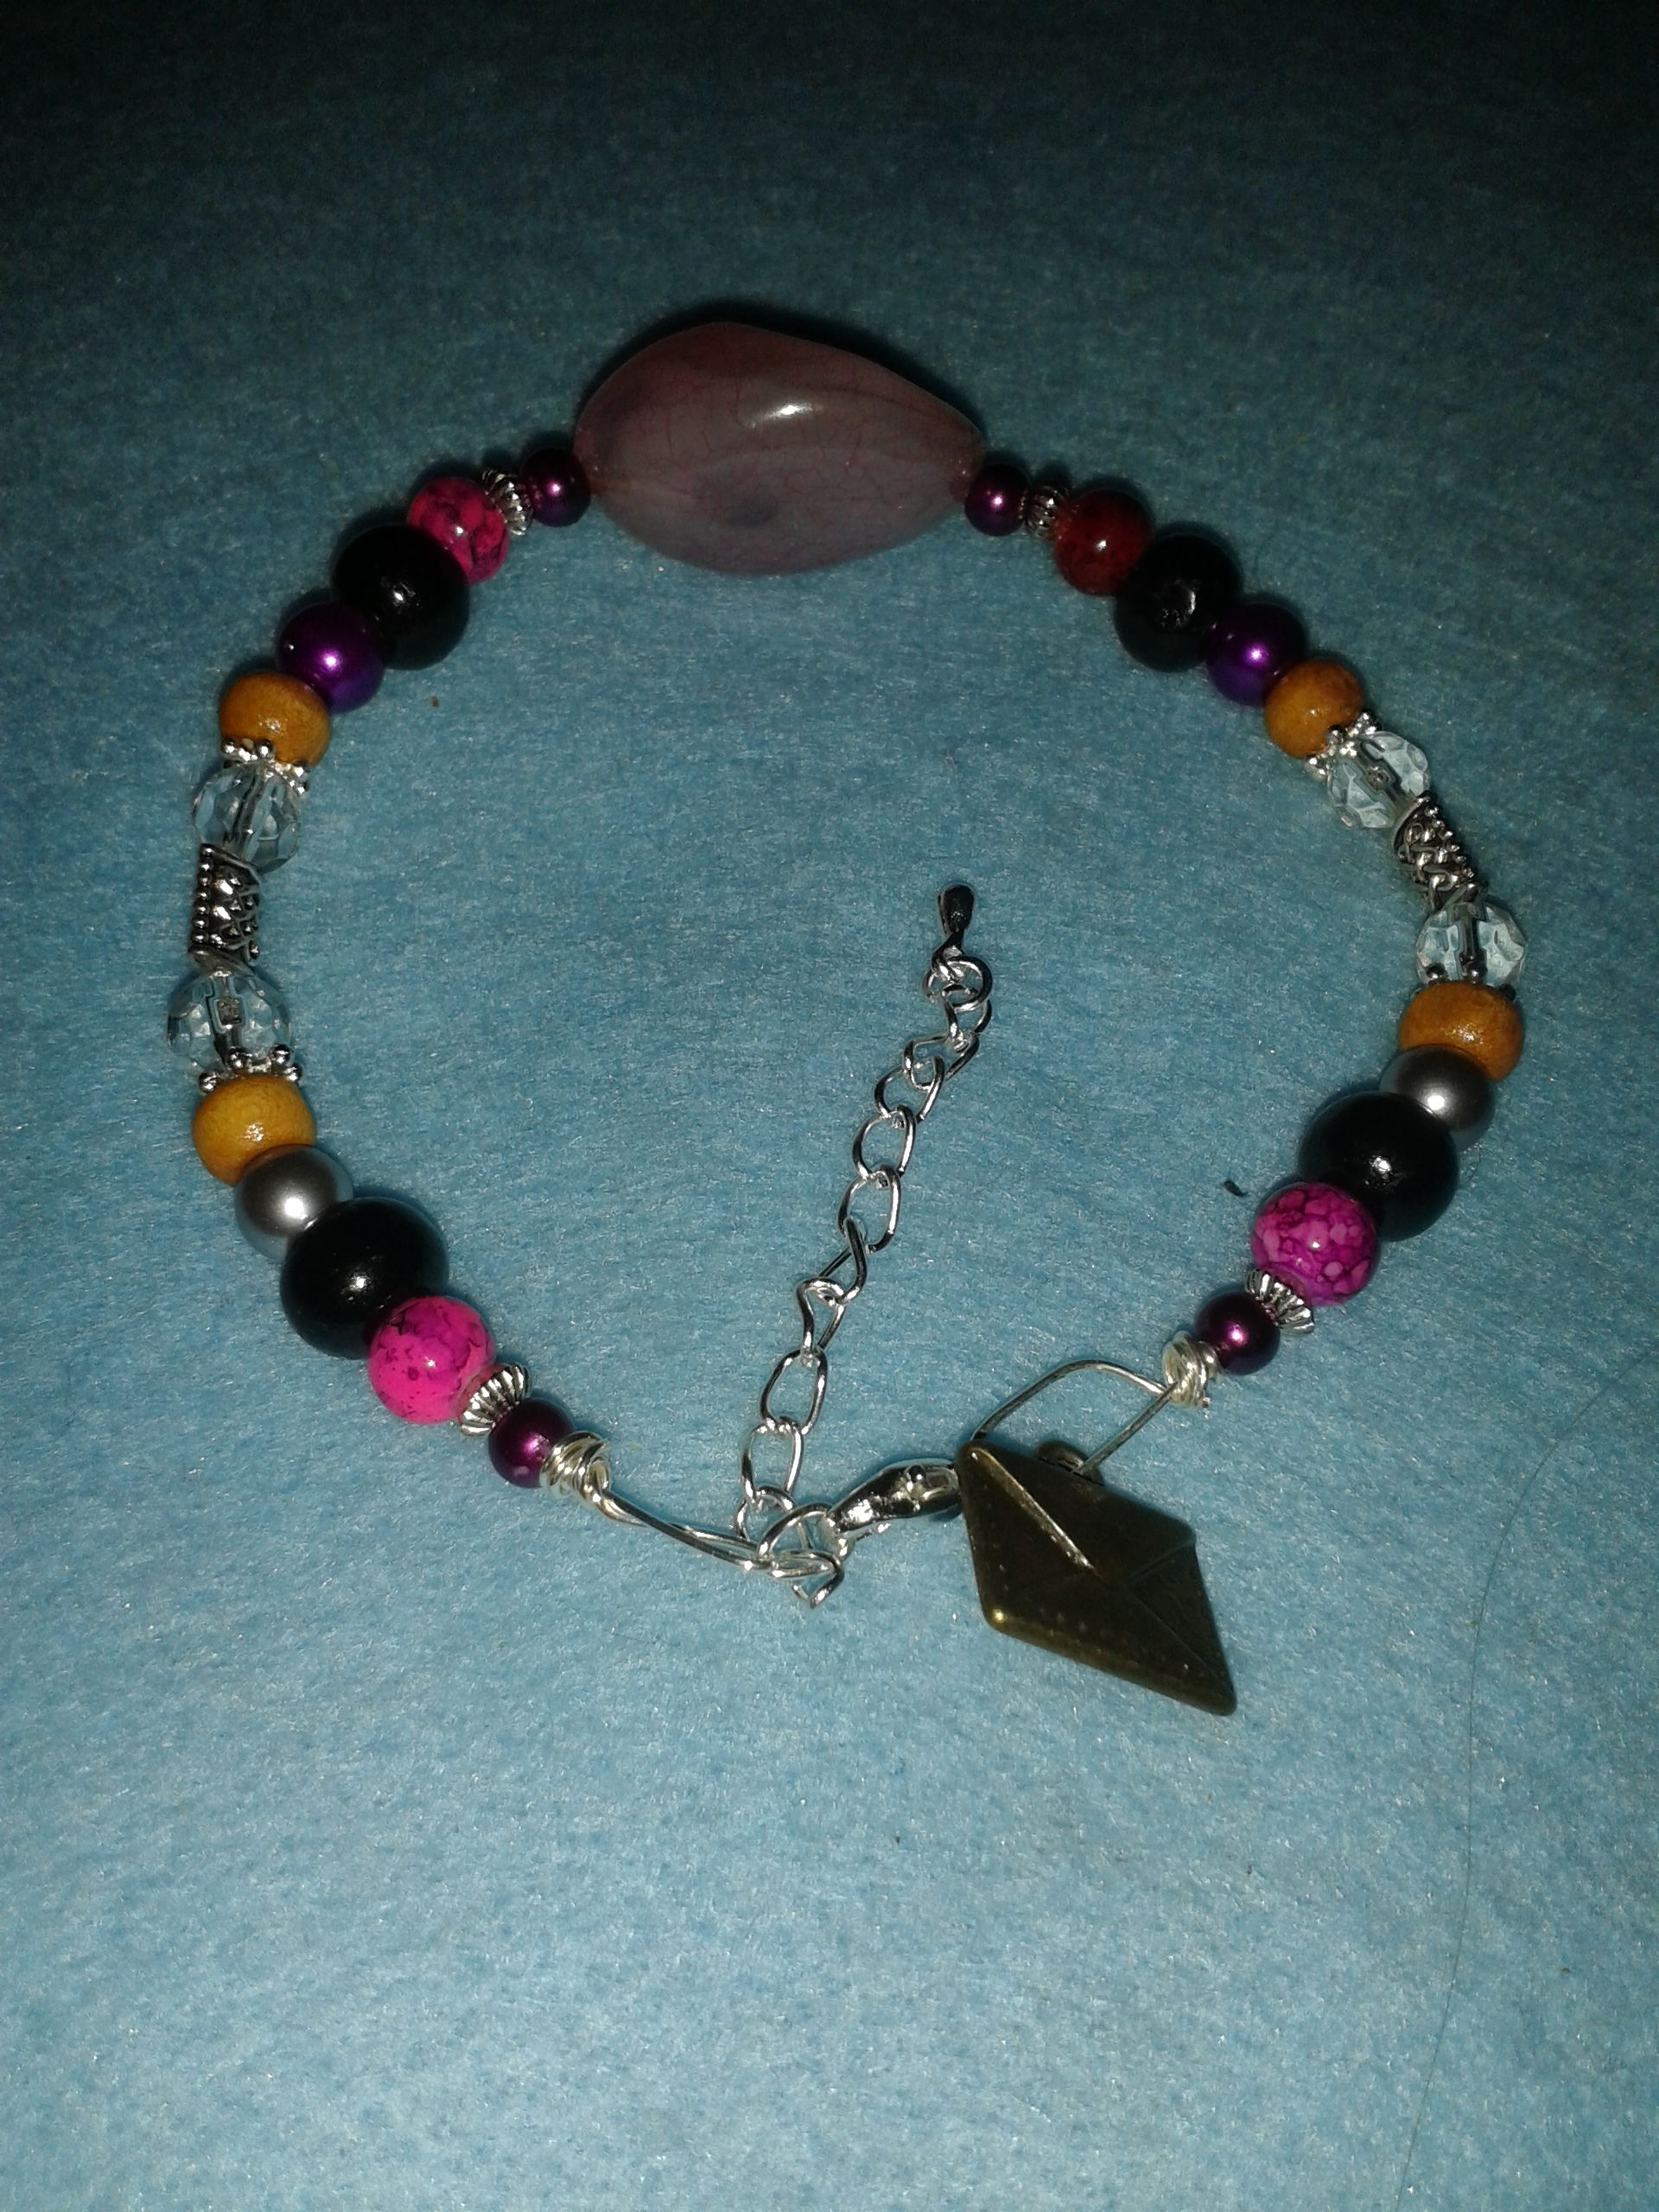 Bracelet from 16/06/14. Price £7.50. Designed with love by me, pain terrible today.